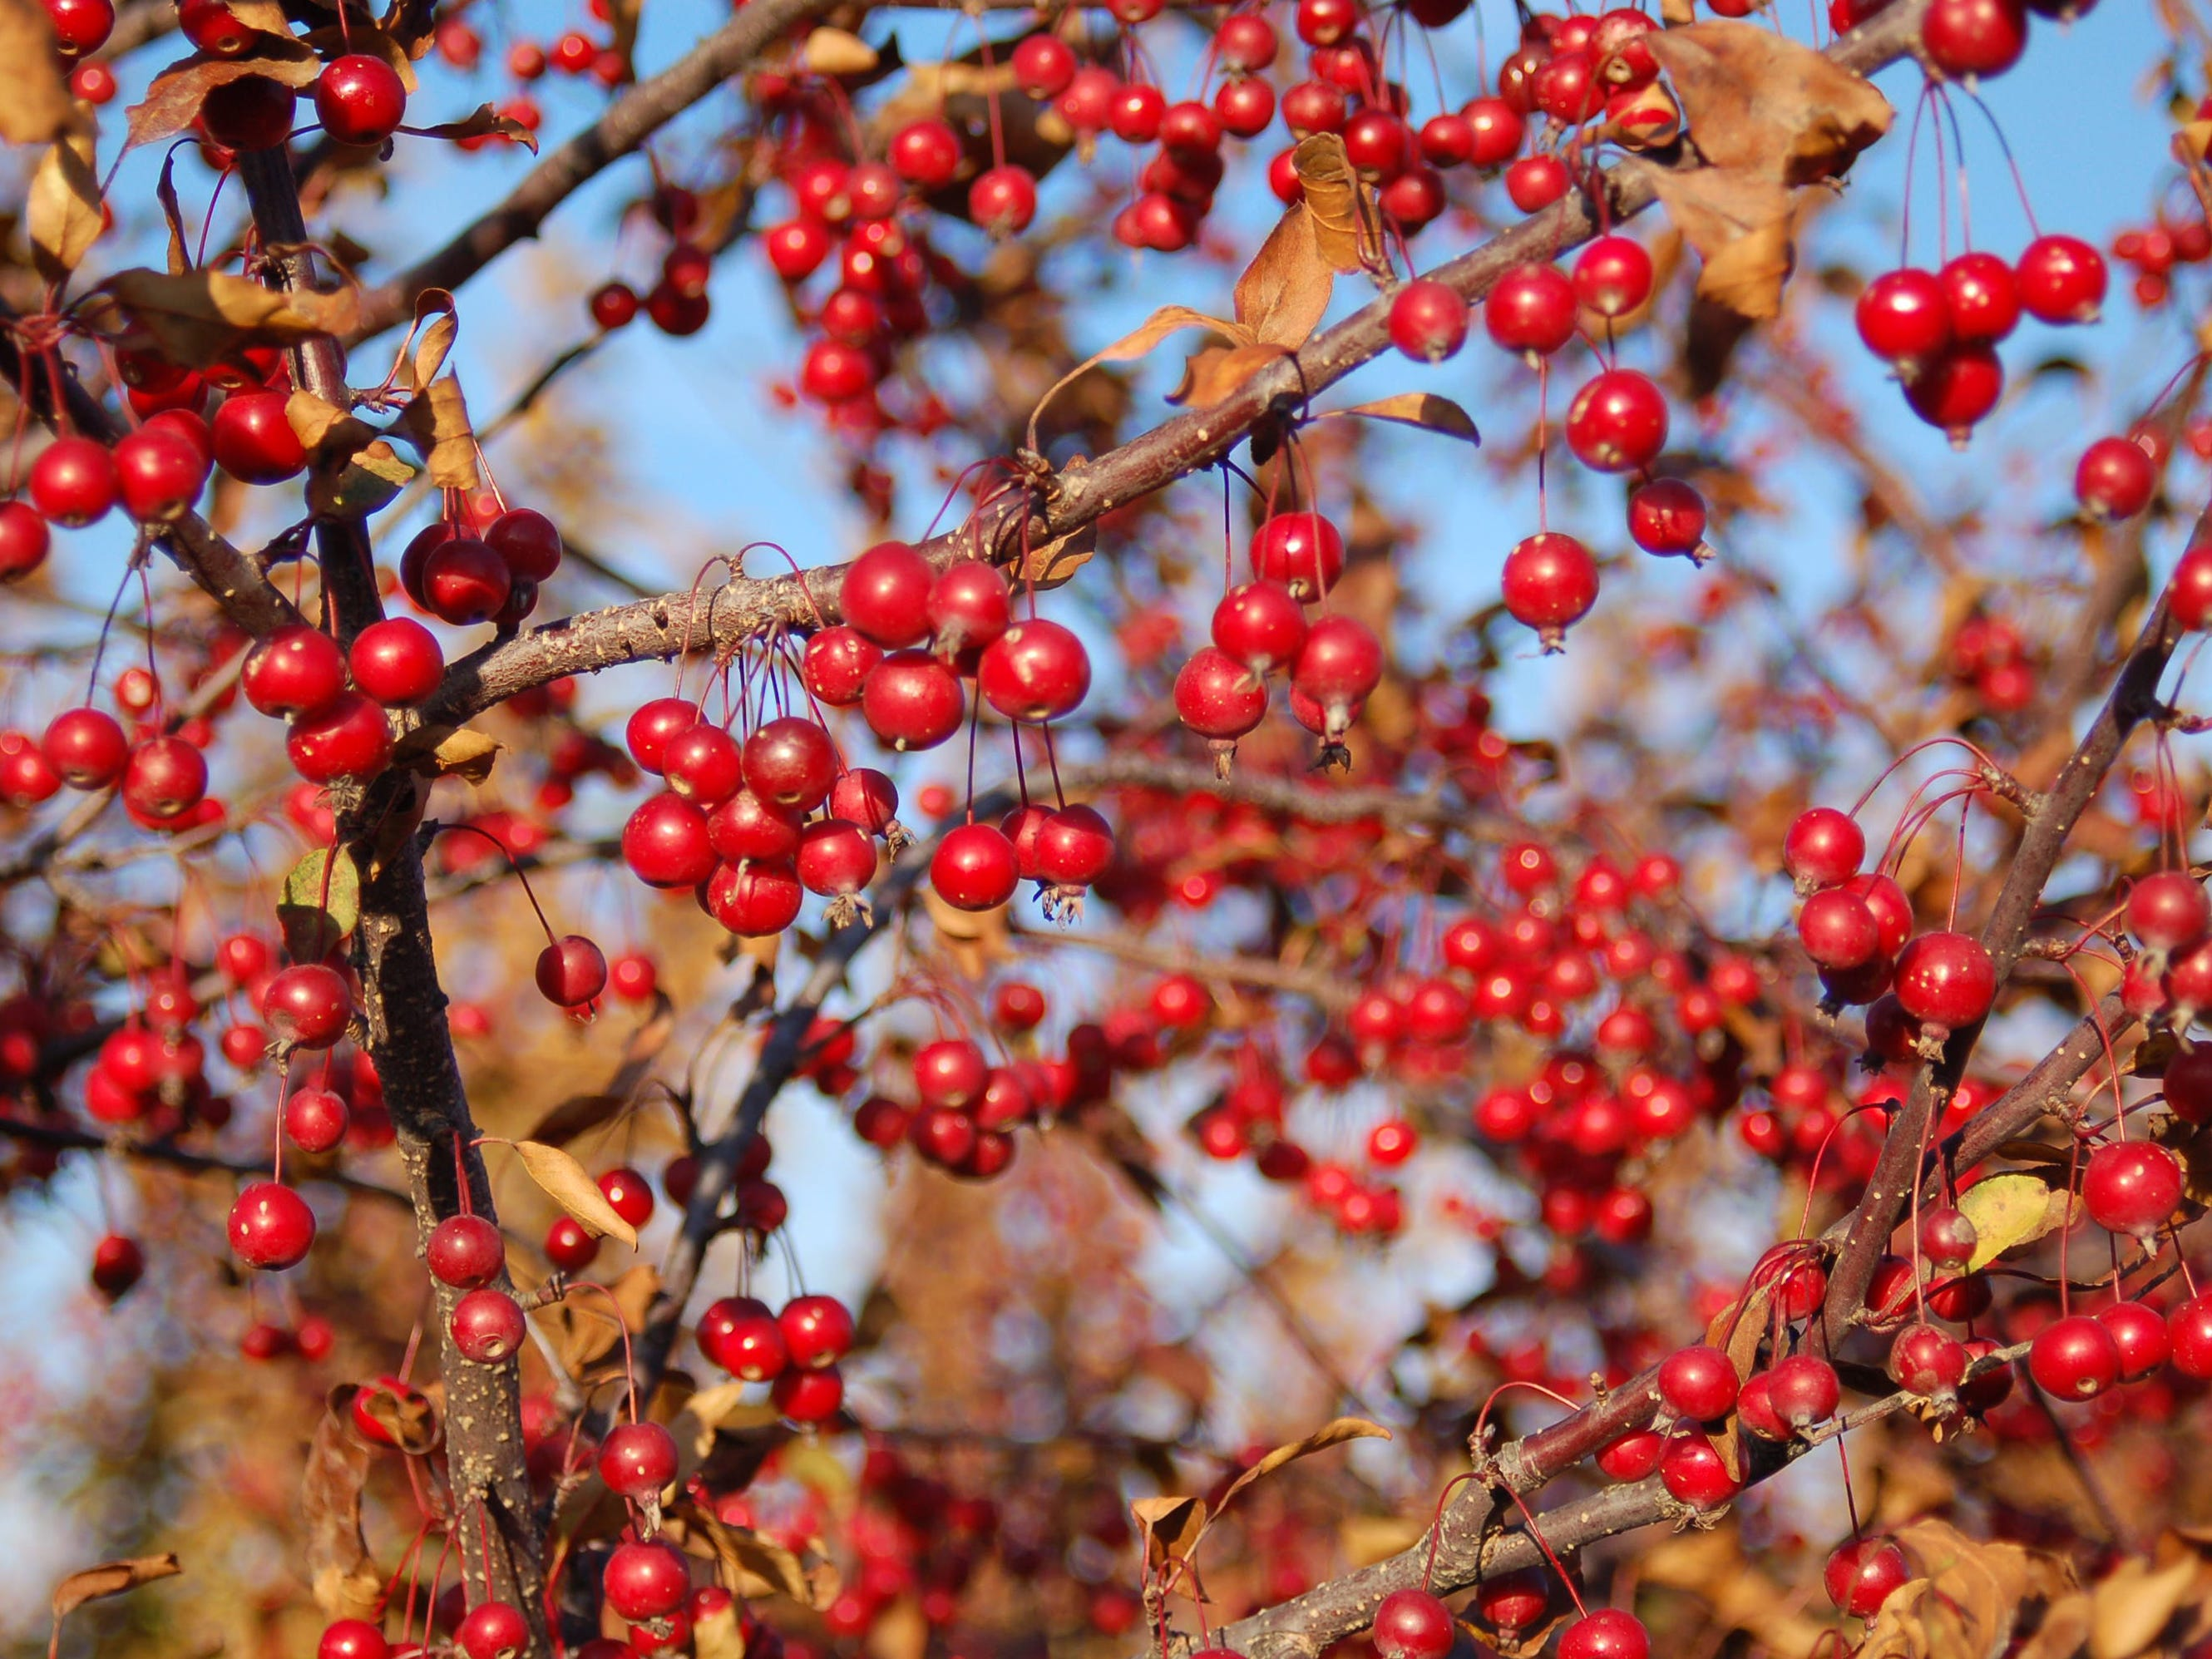 These red fruits appear on the Prairifire crabapple.